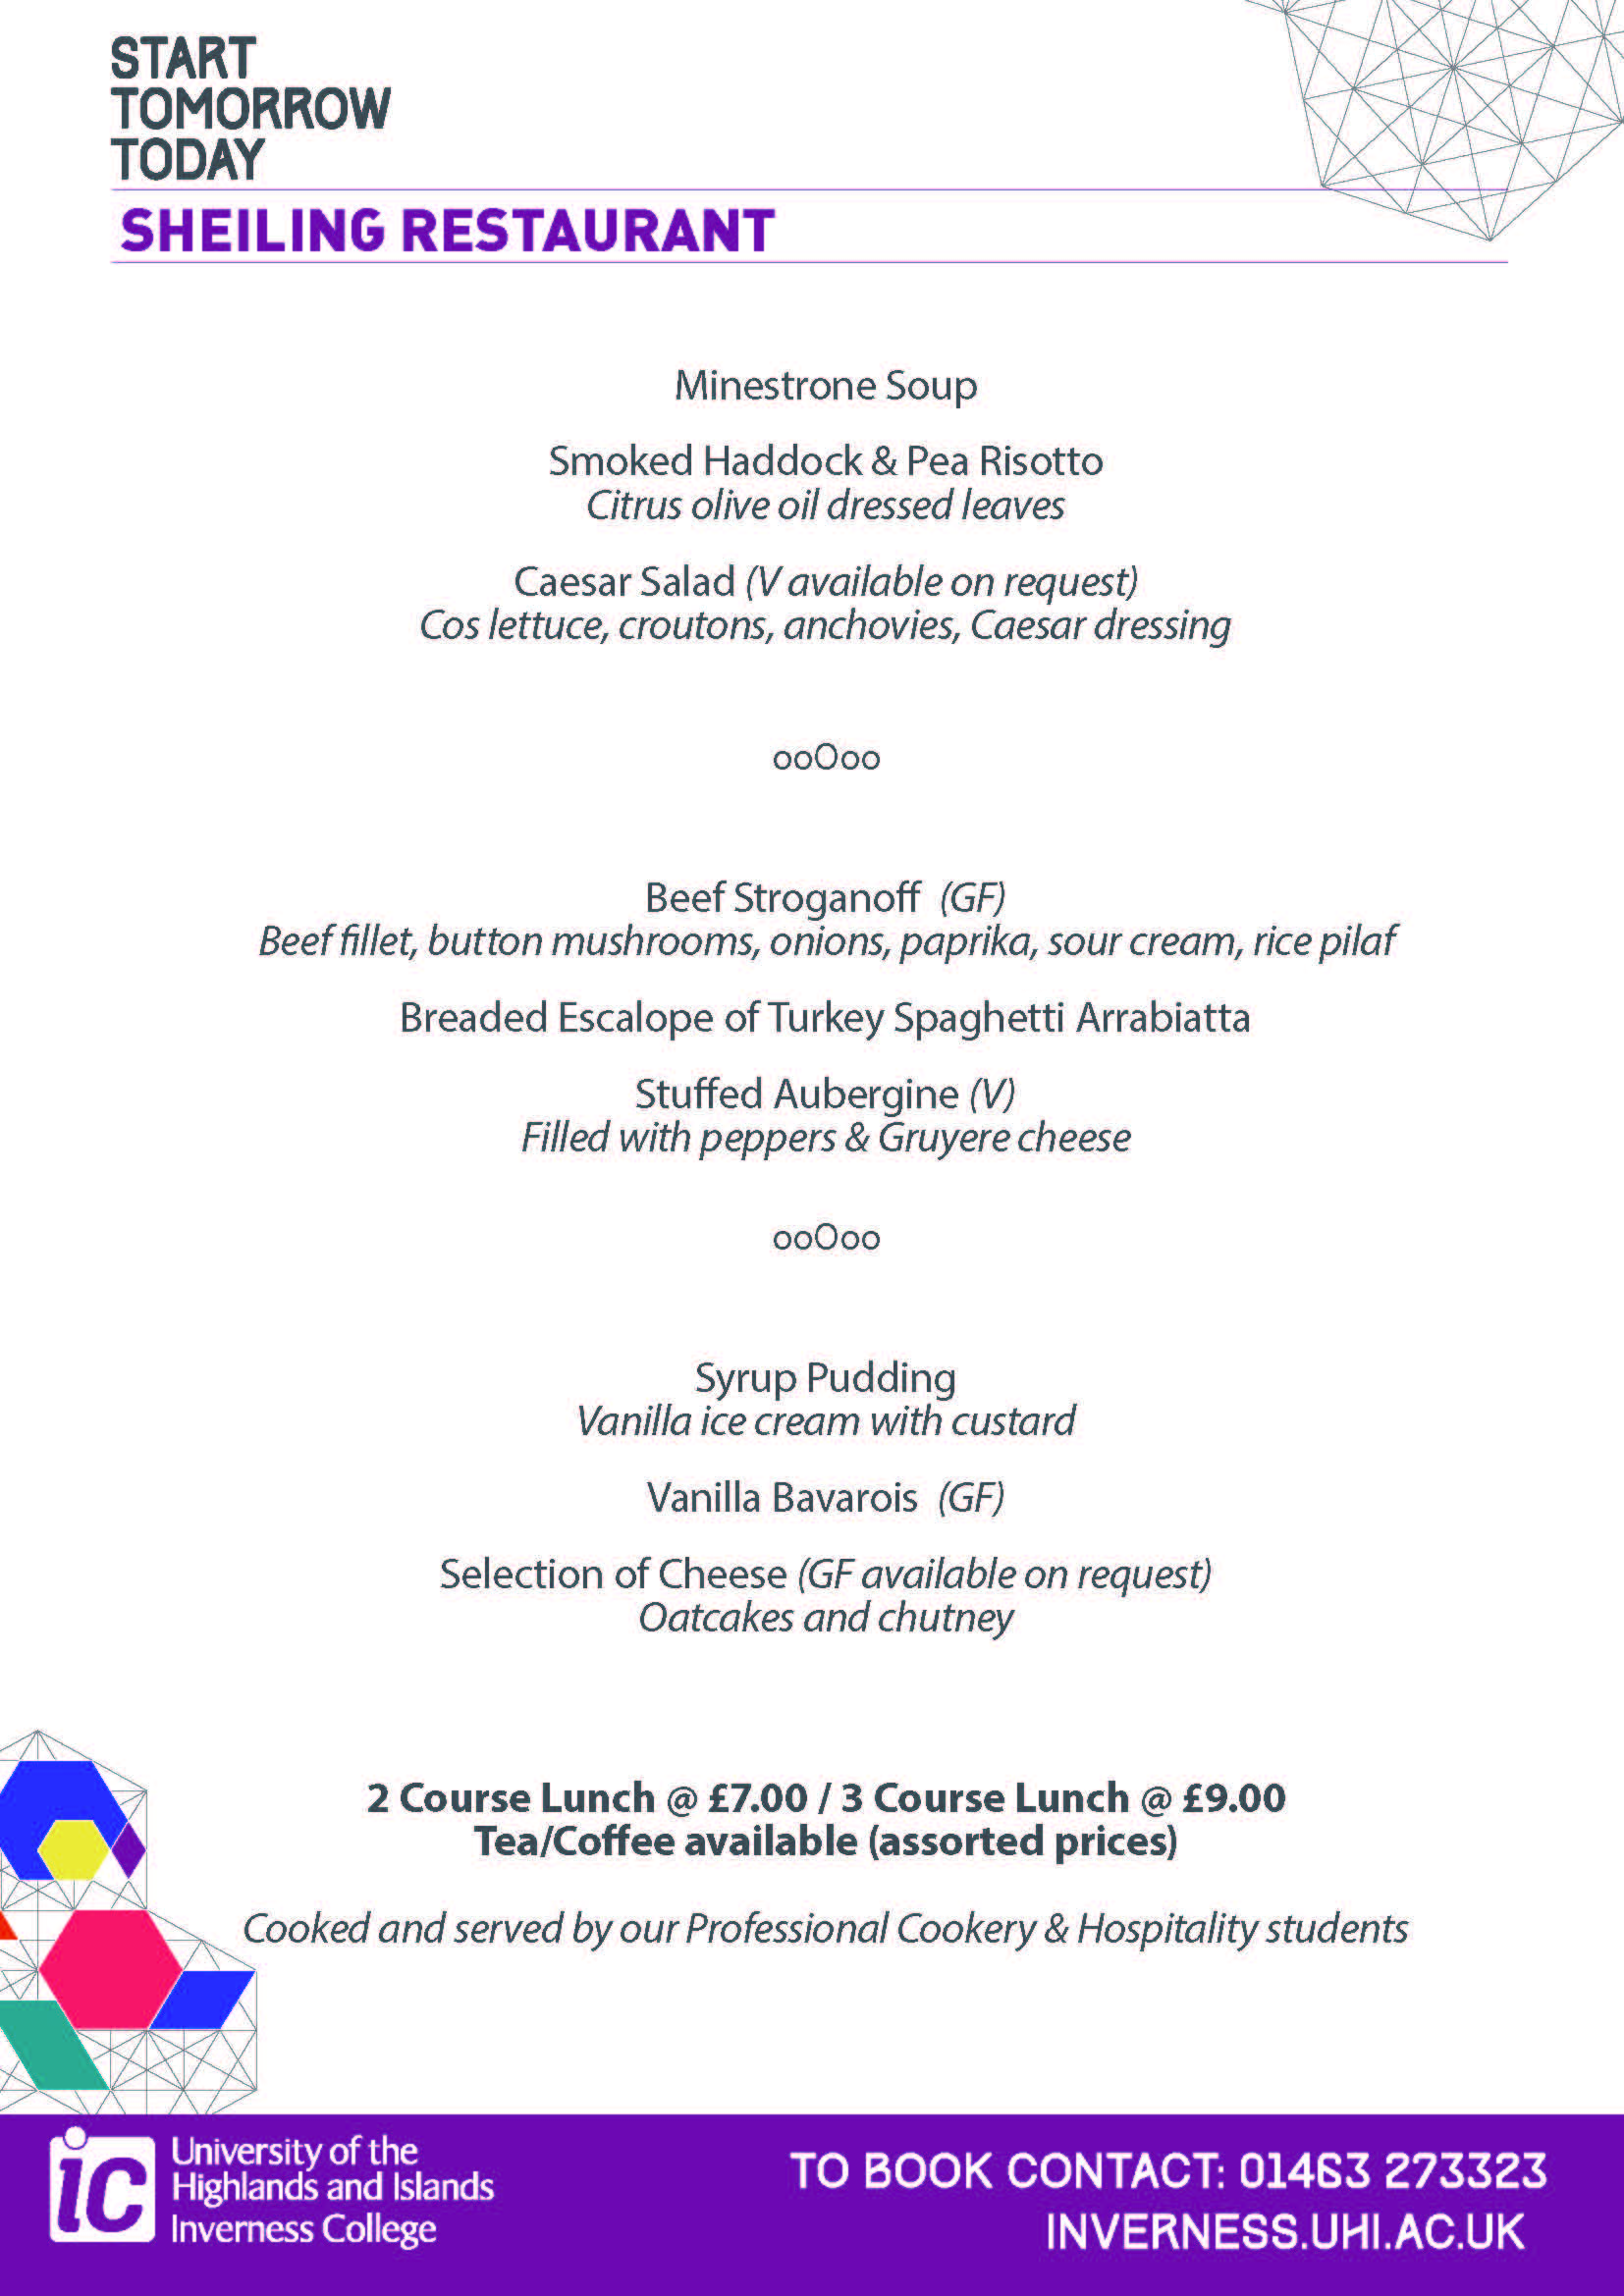 Sample lunch menu - Sheiling Restaurant, Inverness College UHI